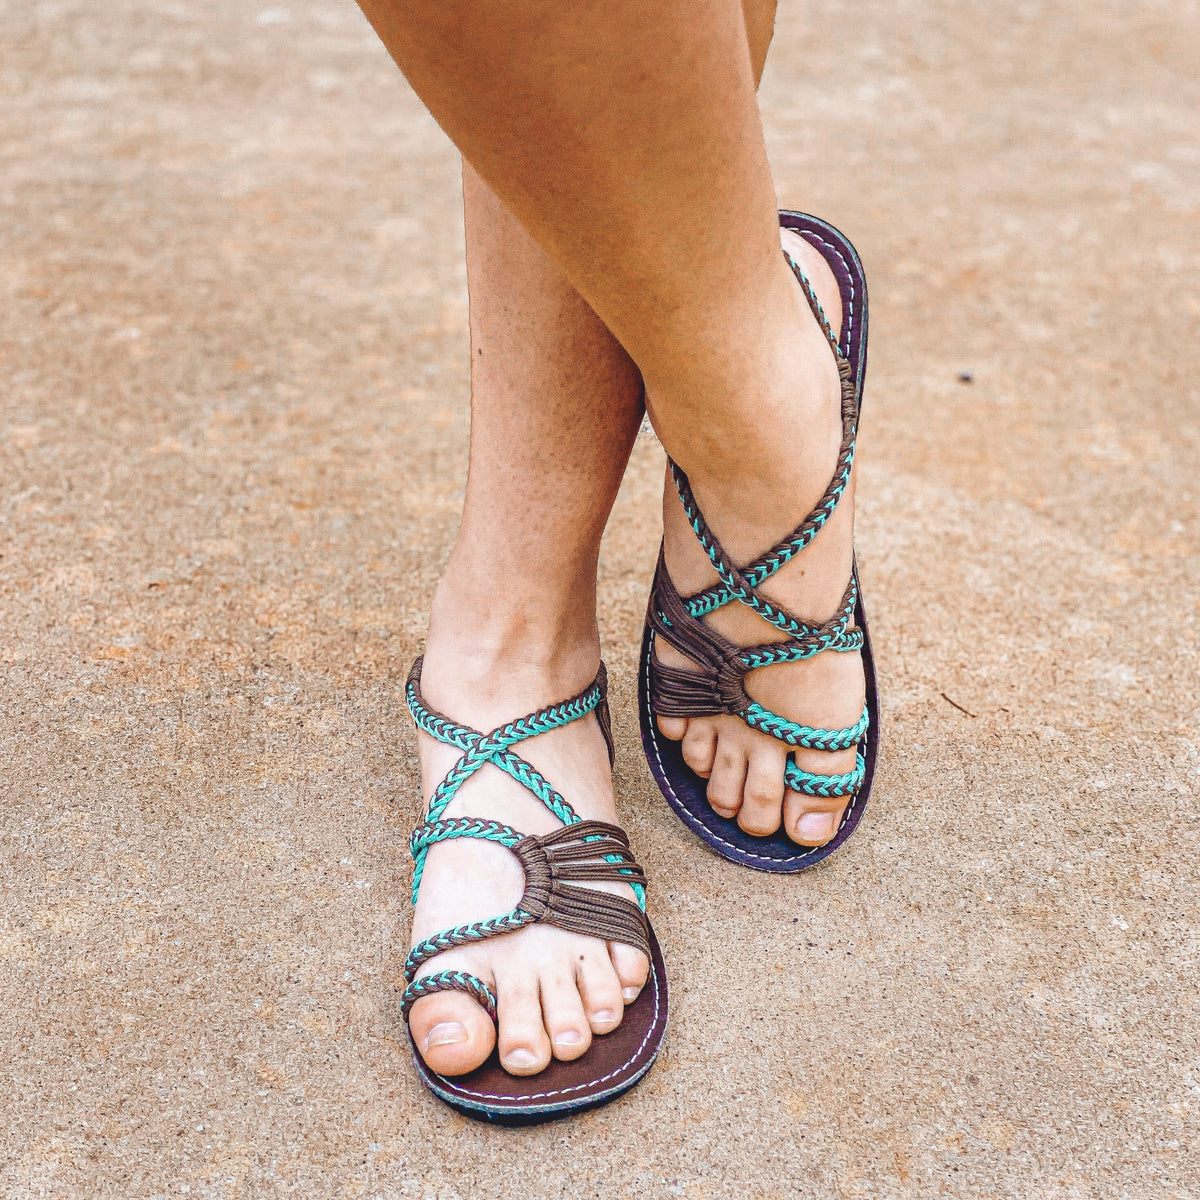 Palm Leaf Flat Summer Sandals - Turquoise Gray